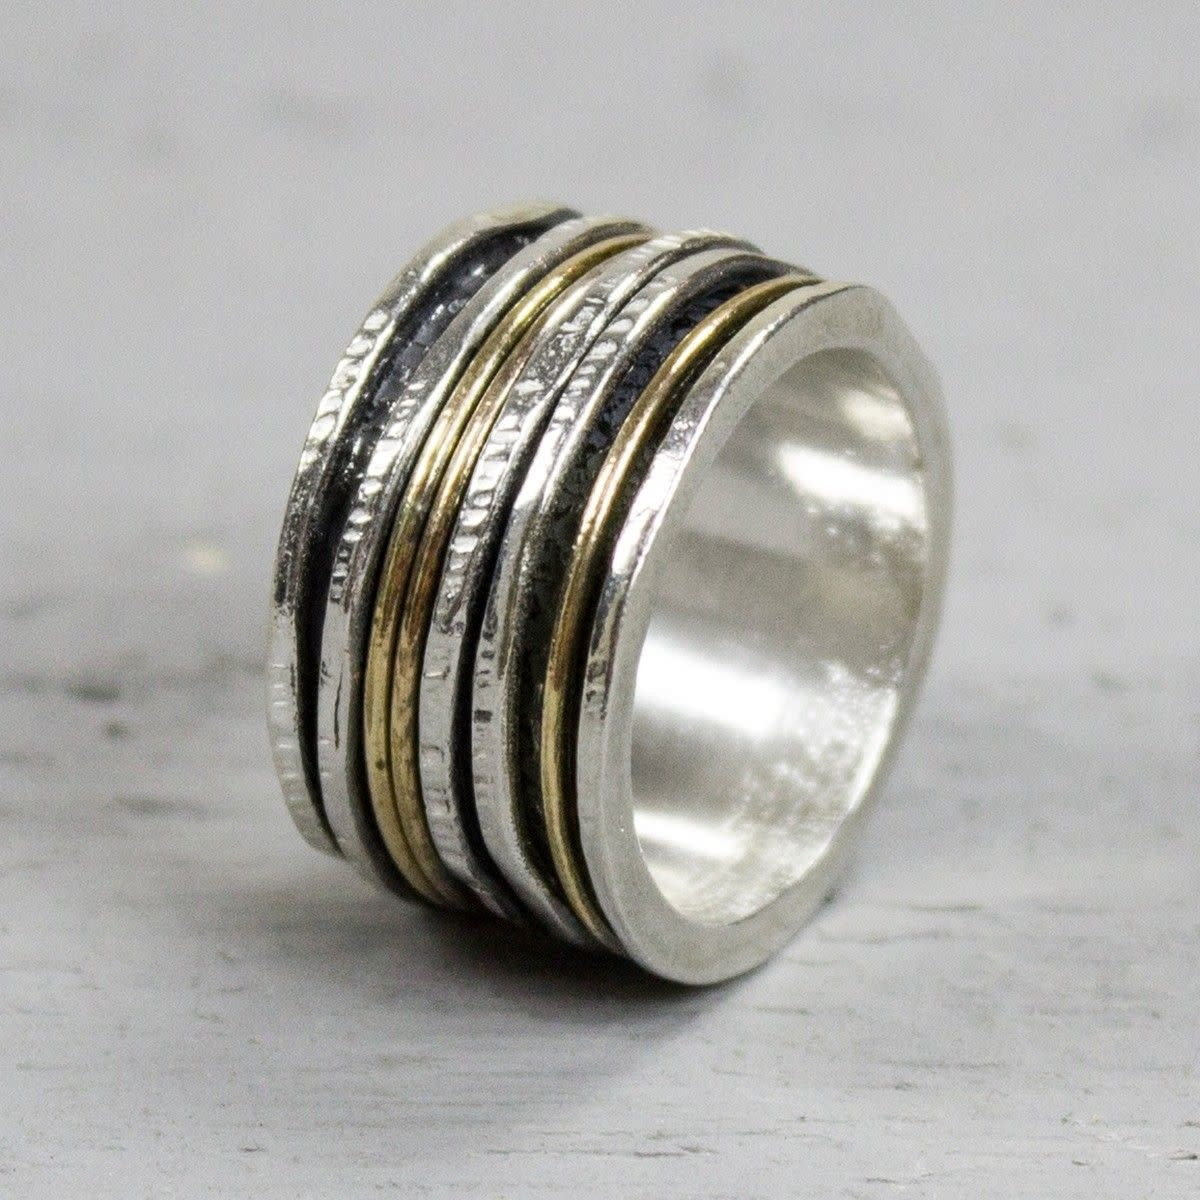 Ring Silver + Gold Filled 19436-9